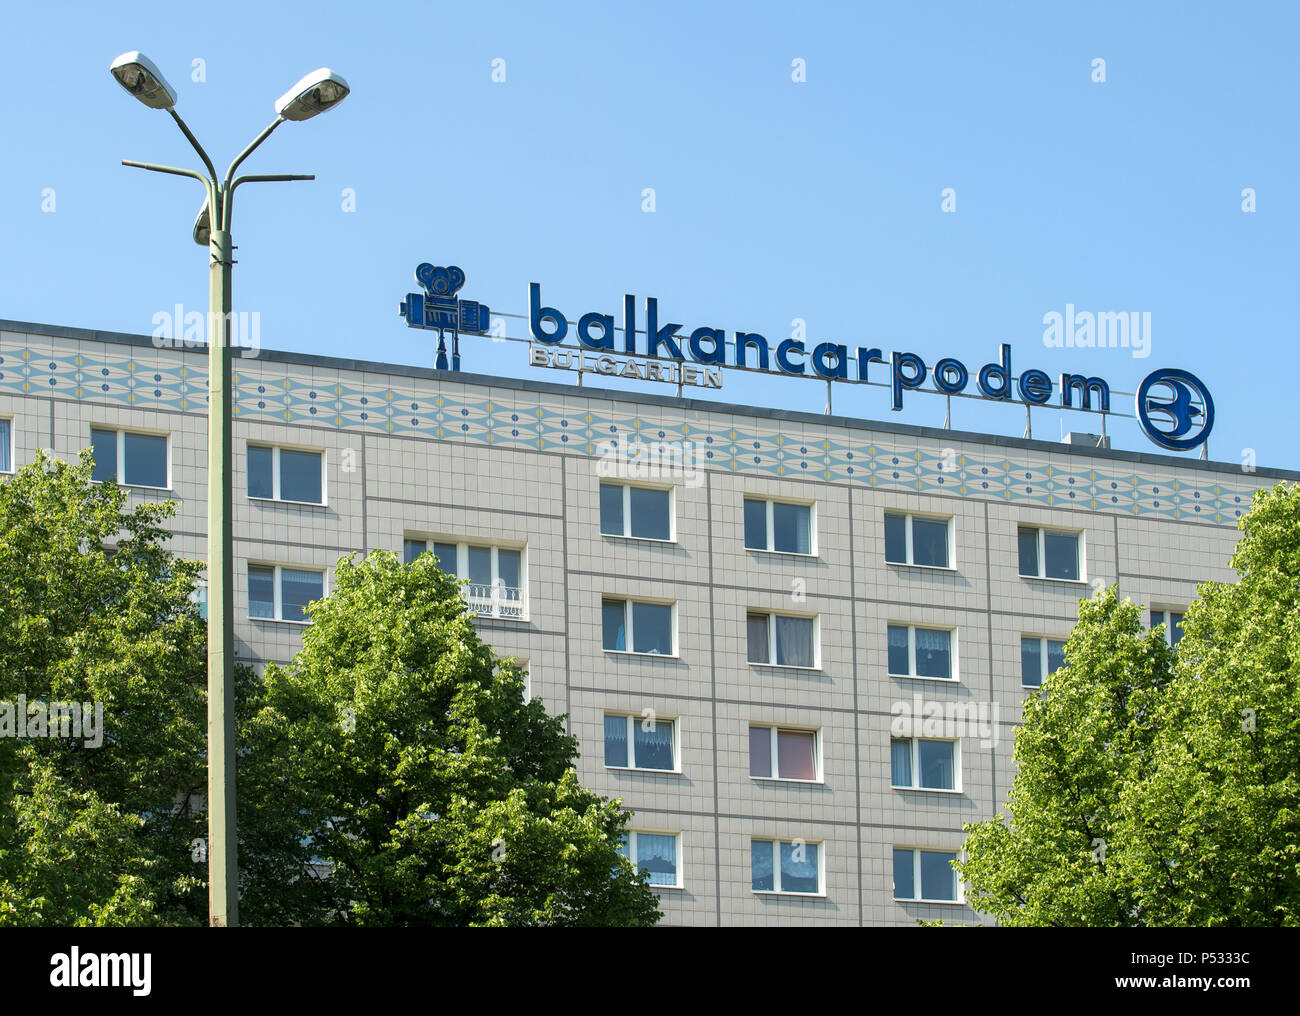 Historical advertising from GDR times for BALKANCARPODEM BULGARIA on a panel in Karl-Marx-Allee - Stock Image